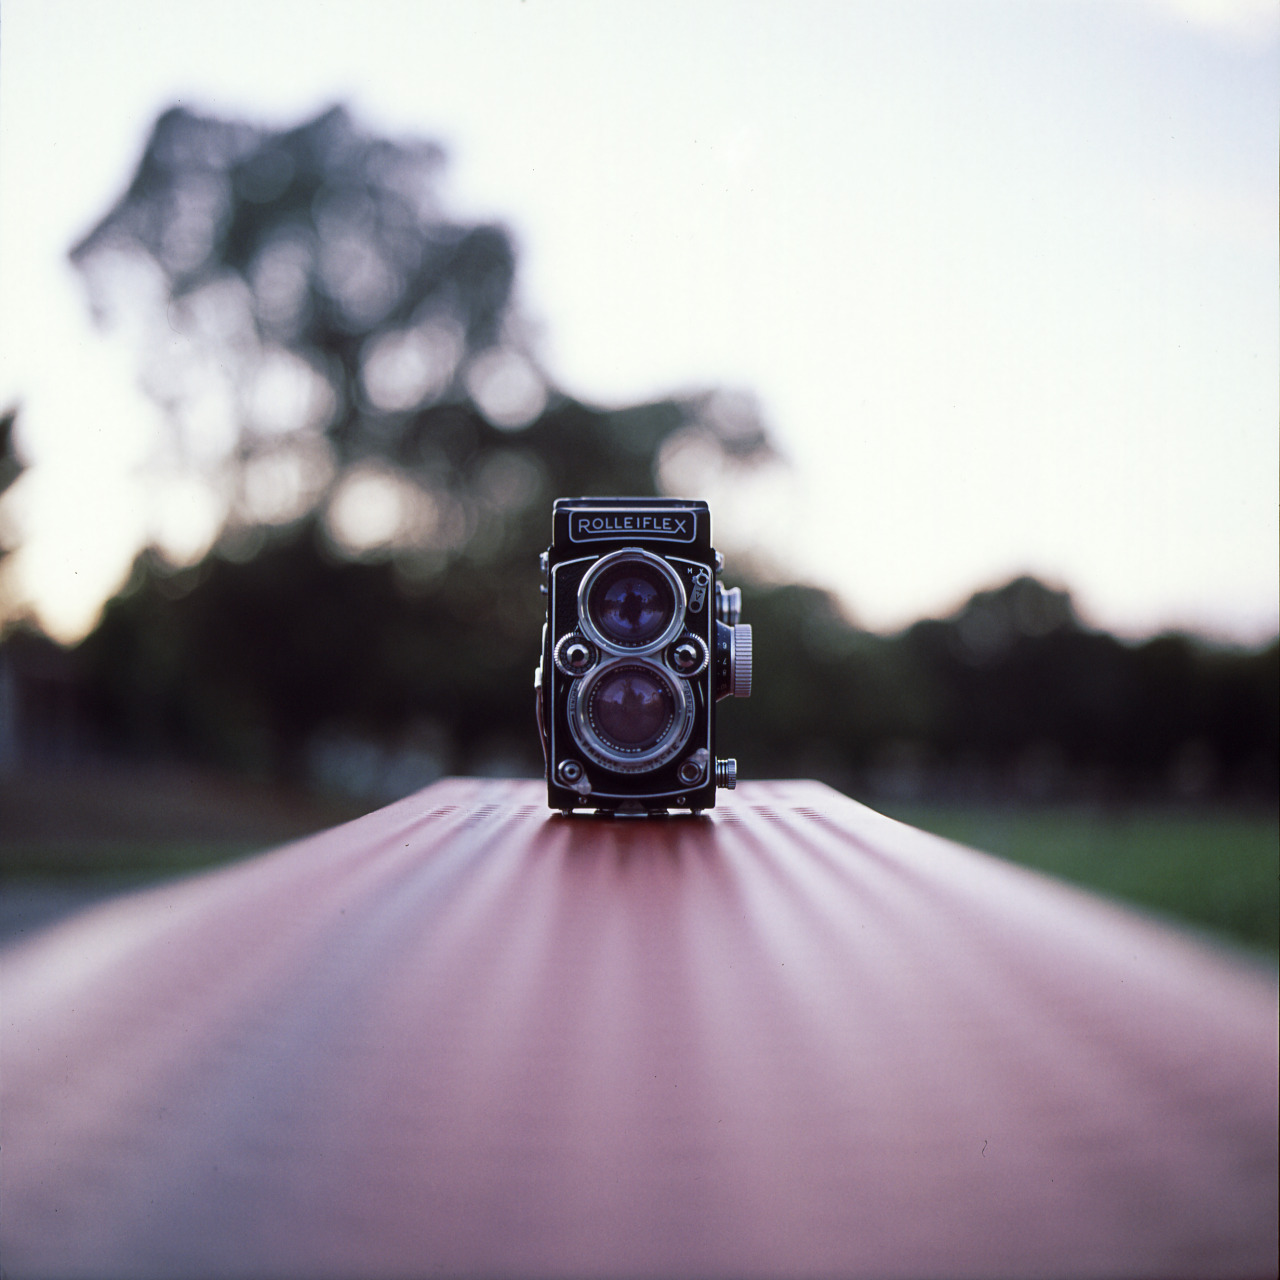 istillshootfilm:  Film Photography Submission By: Diyosa Carter   -Rolleiflex SL66, Fuji FujiChrome Provia 400x-Ricky's Rollei: http://www.flickr.com/photos/diyosa/6277079888/in/set-72157626259825709